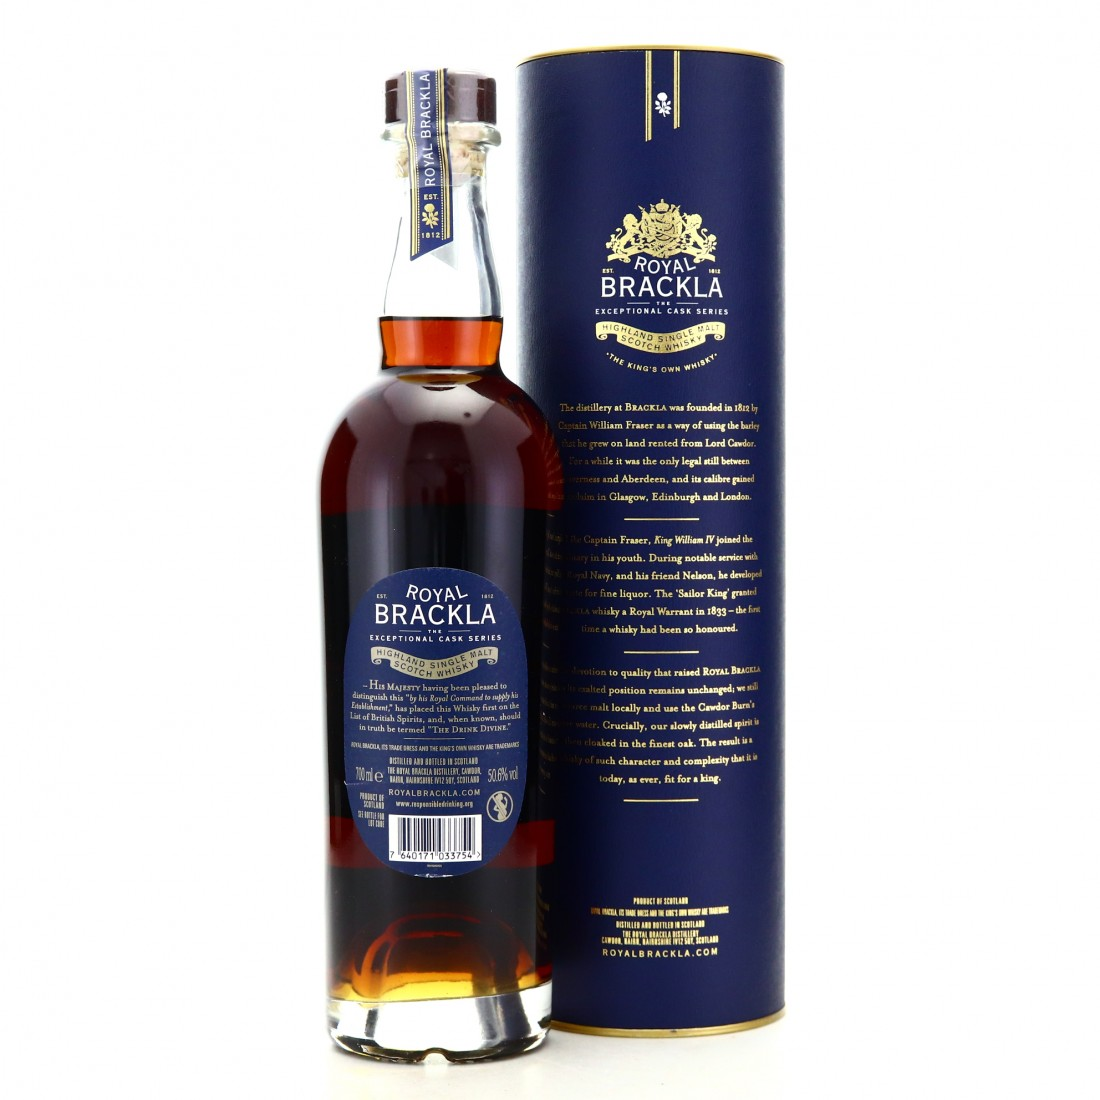 Royal Brackla 1998 Italian Red Wine Finish 20 Year Old / Exceptional Cask Series